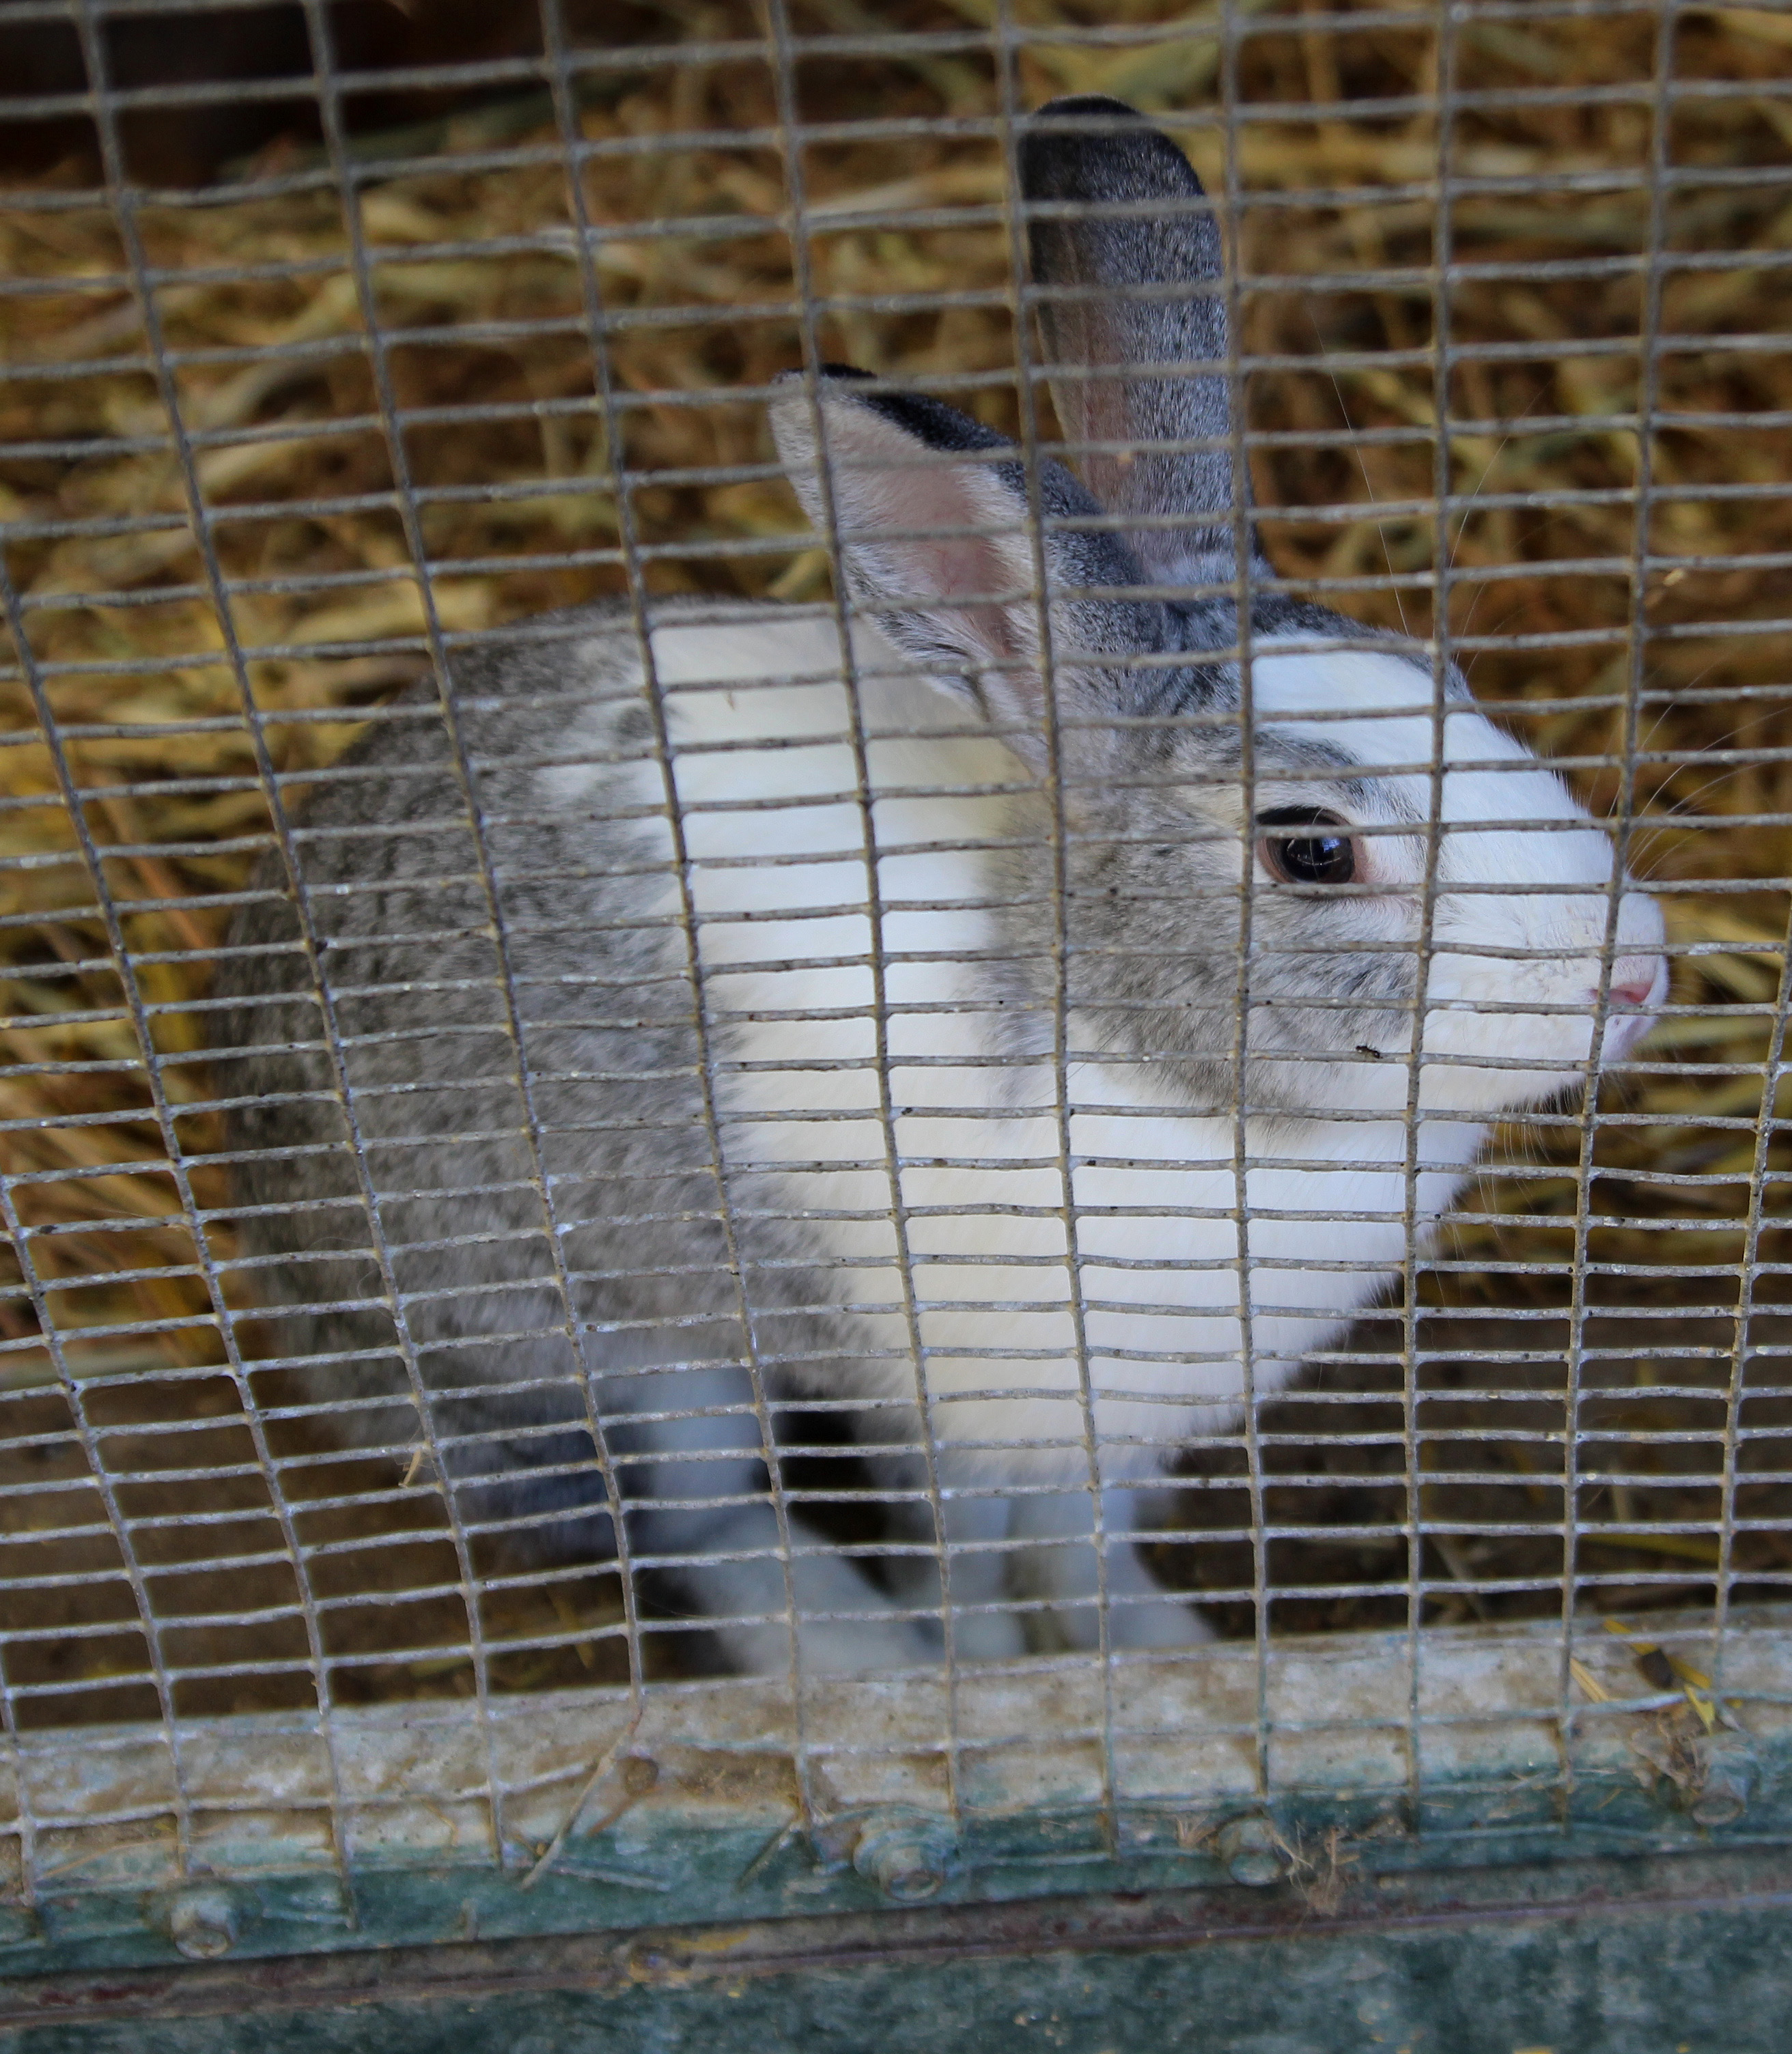 Rabbit in the Petting Zoo